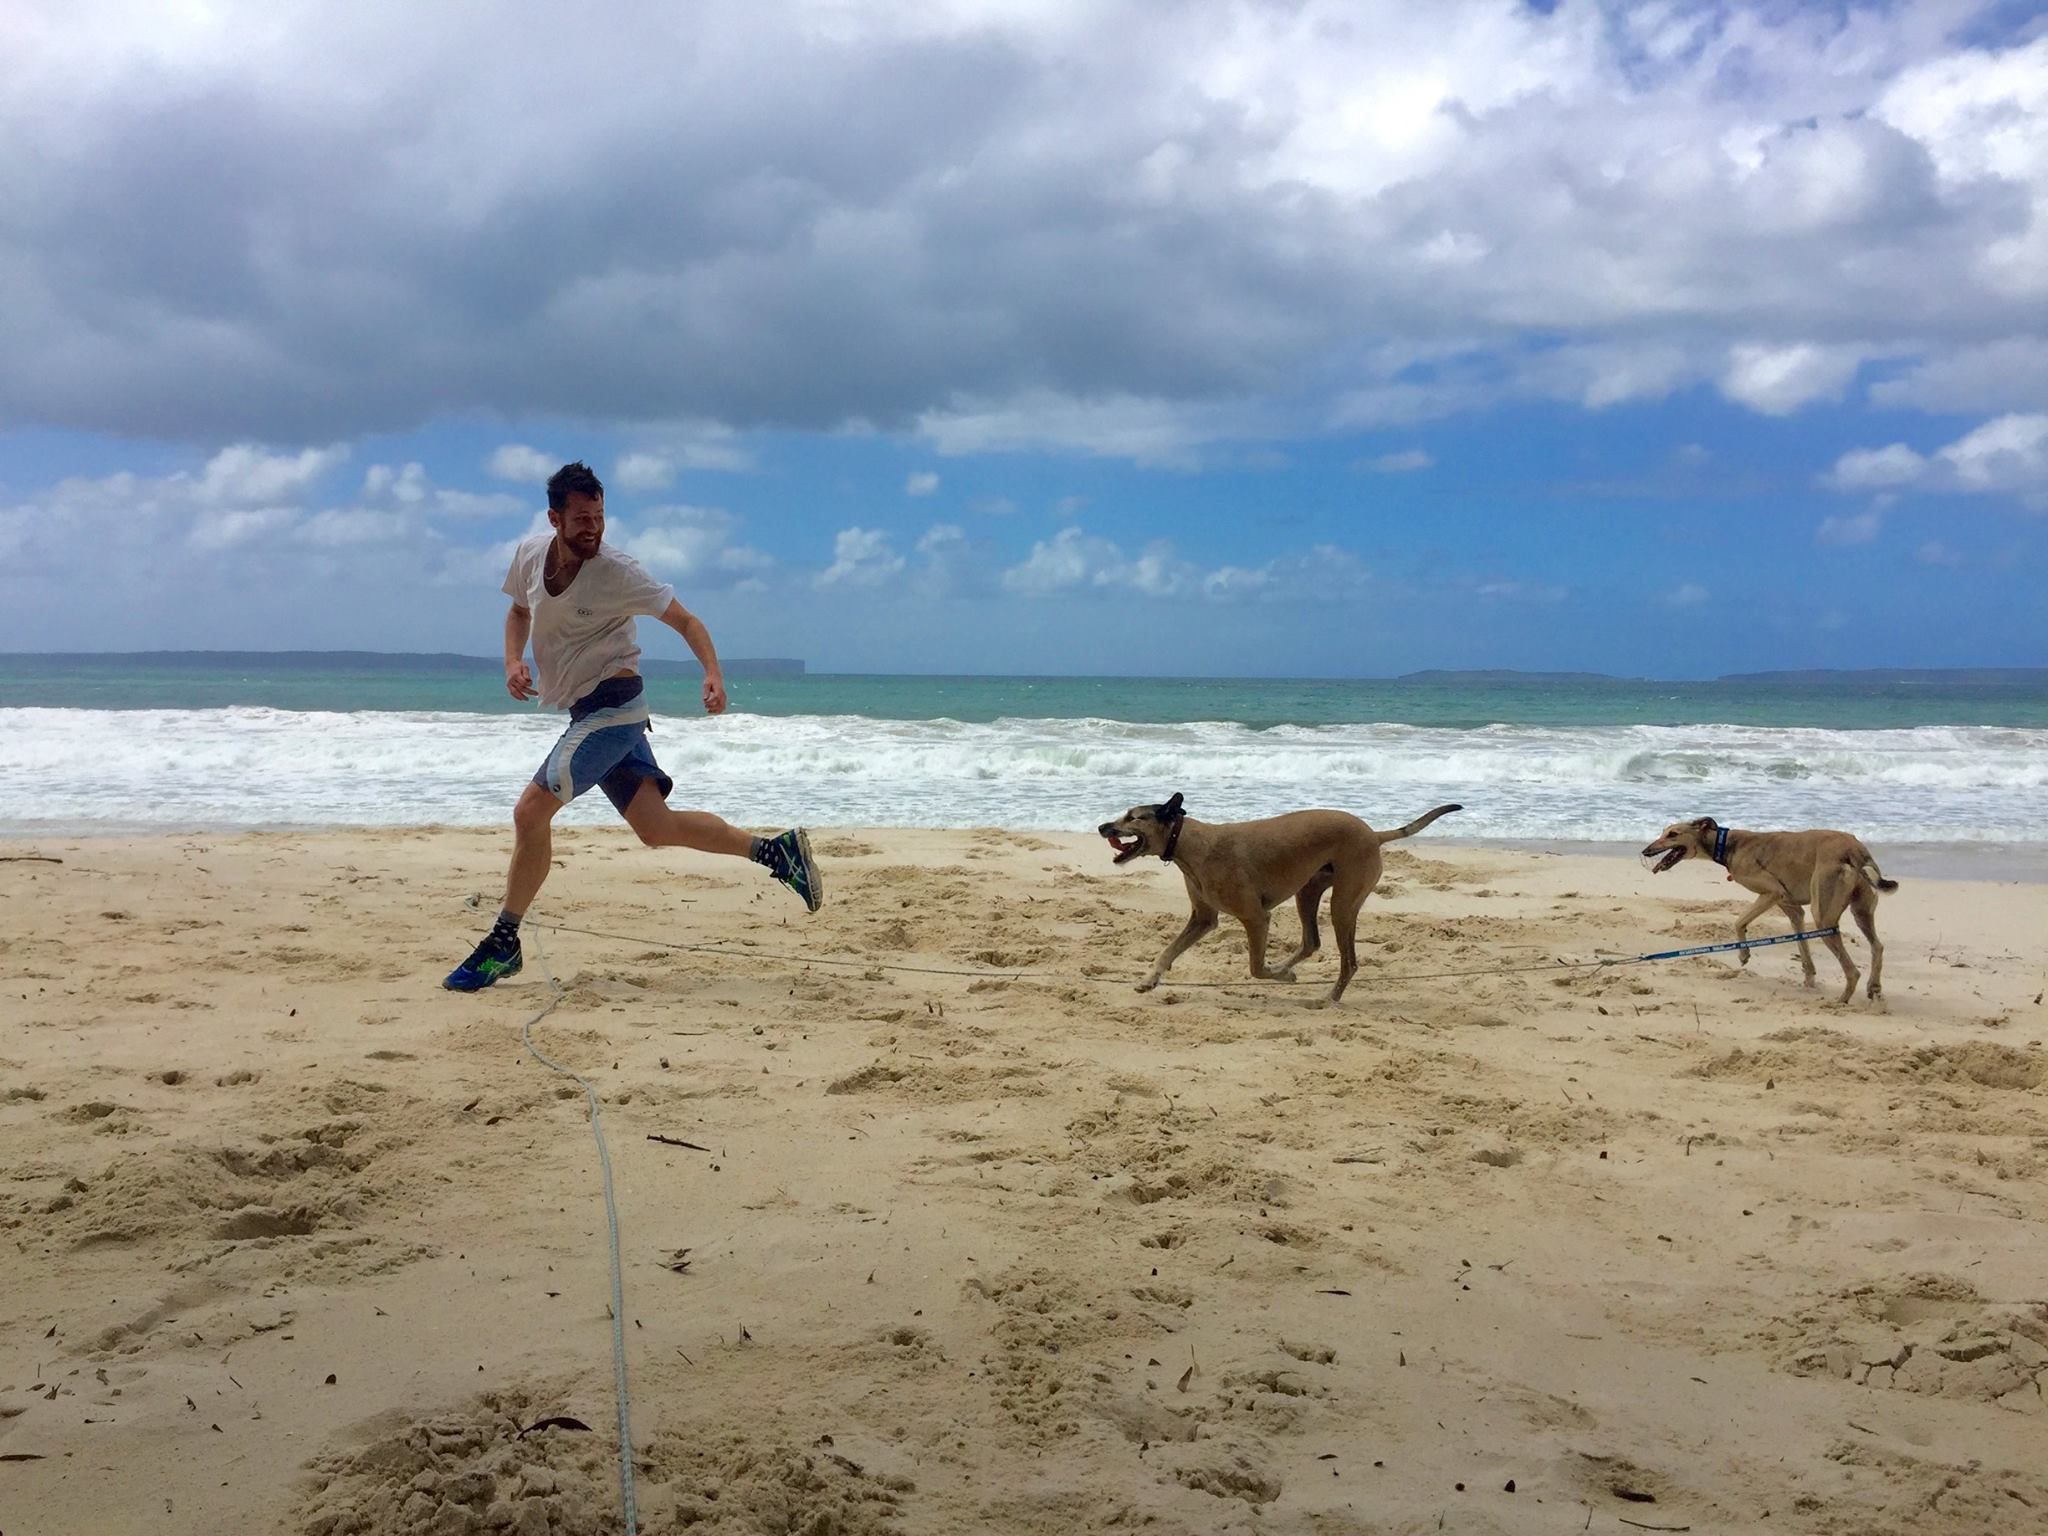 I'm running with Harvey and Liam at a beach near Huskisson, where Dean and I were camping for 5 days. Liam needs to wear a muzzle and be on a lead at all times as he is a rescue greyhound.